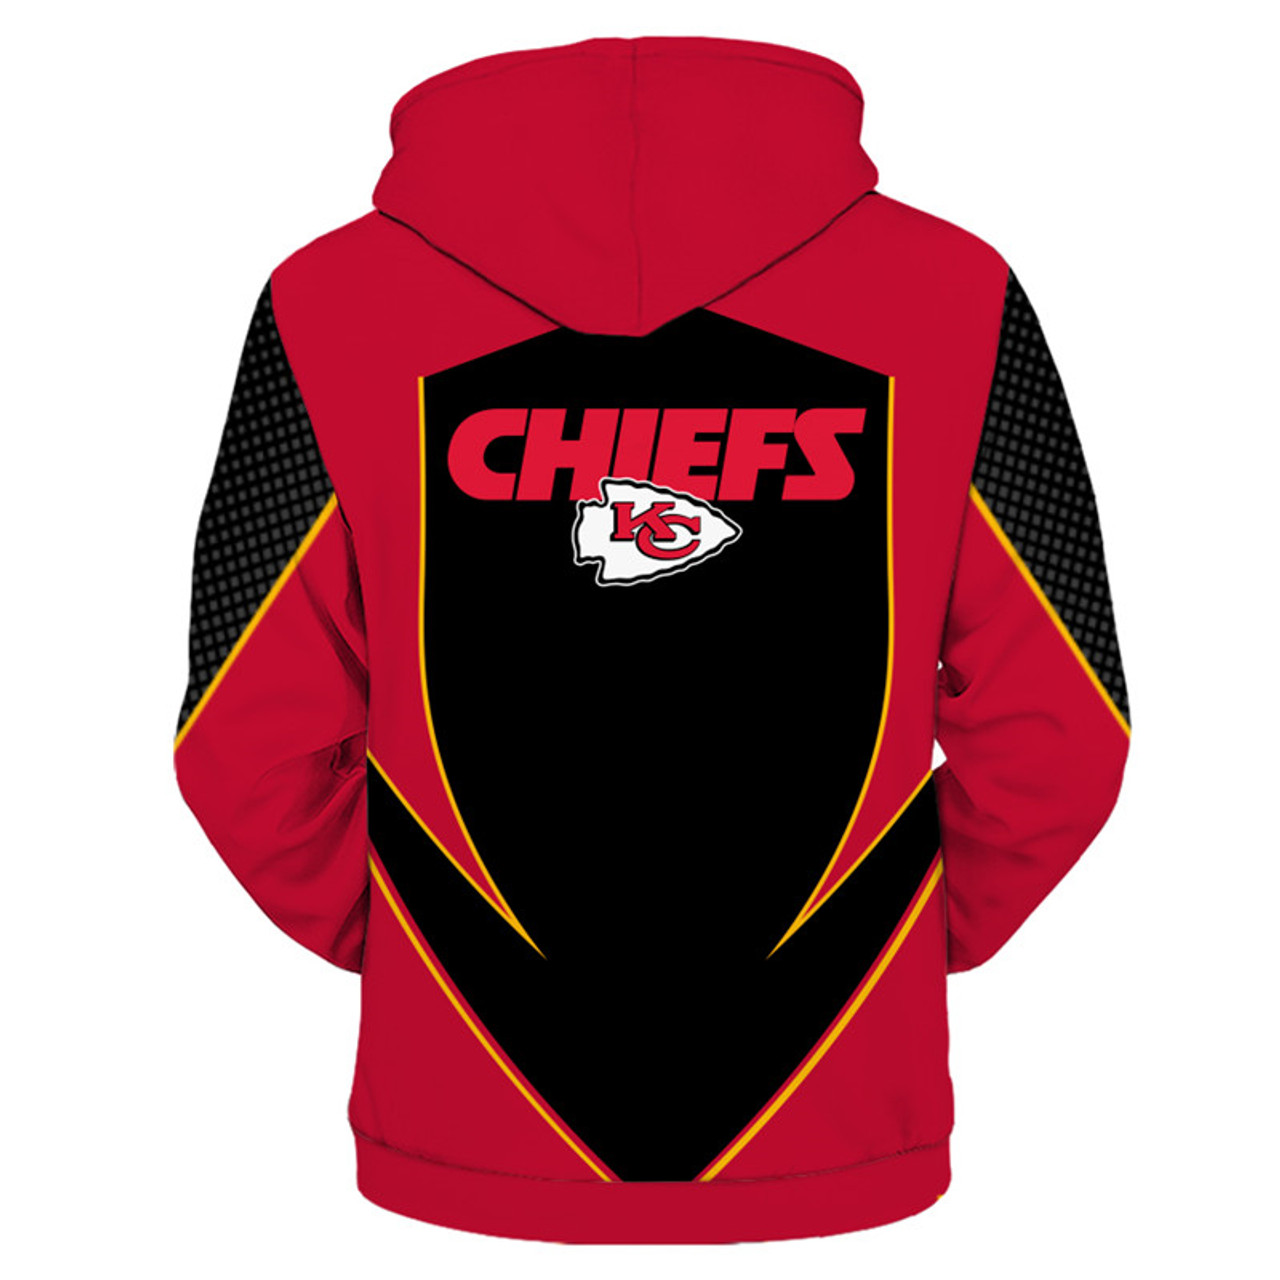 new product b5bb3 378c3 **(OFFICIALLY-LICENSED-N.F.L.KANSAS-CITY-CHIEFS-TEAM-ZIPPERED-HOODIES/NEW-CUSTOM-3D-GRAPHIC-PRINTED-DOUBLE-SIDED-DESIGNED/ALL-OVER-OFFICIAL-CHIEFS-LOG...